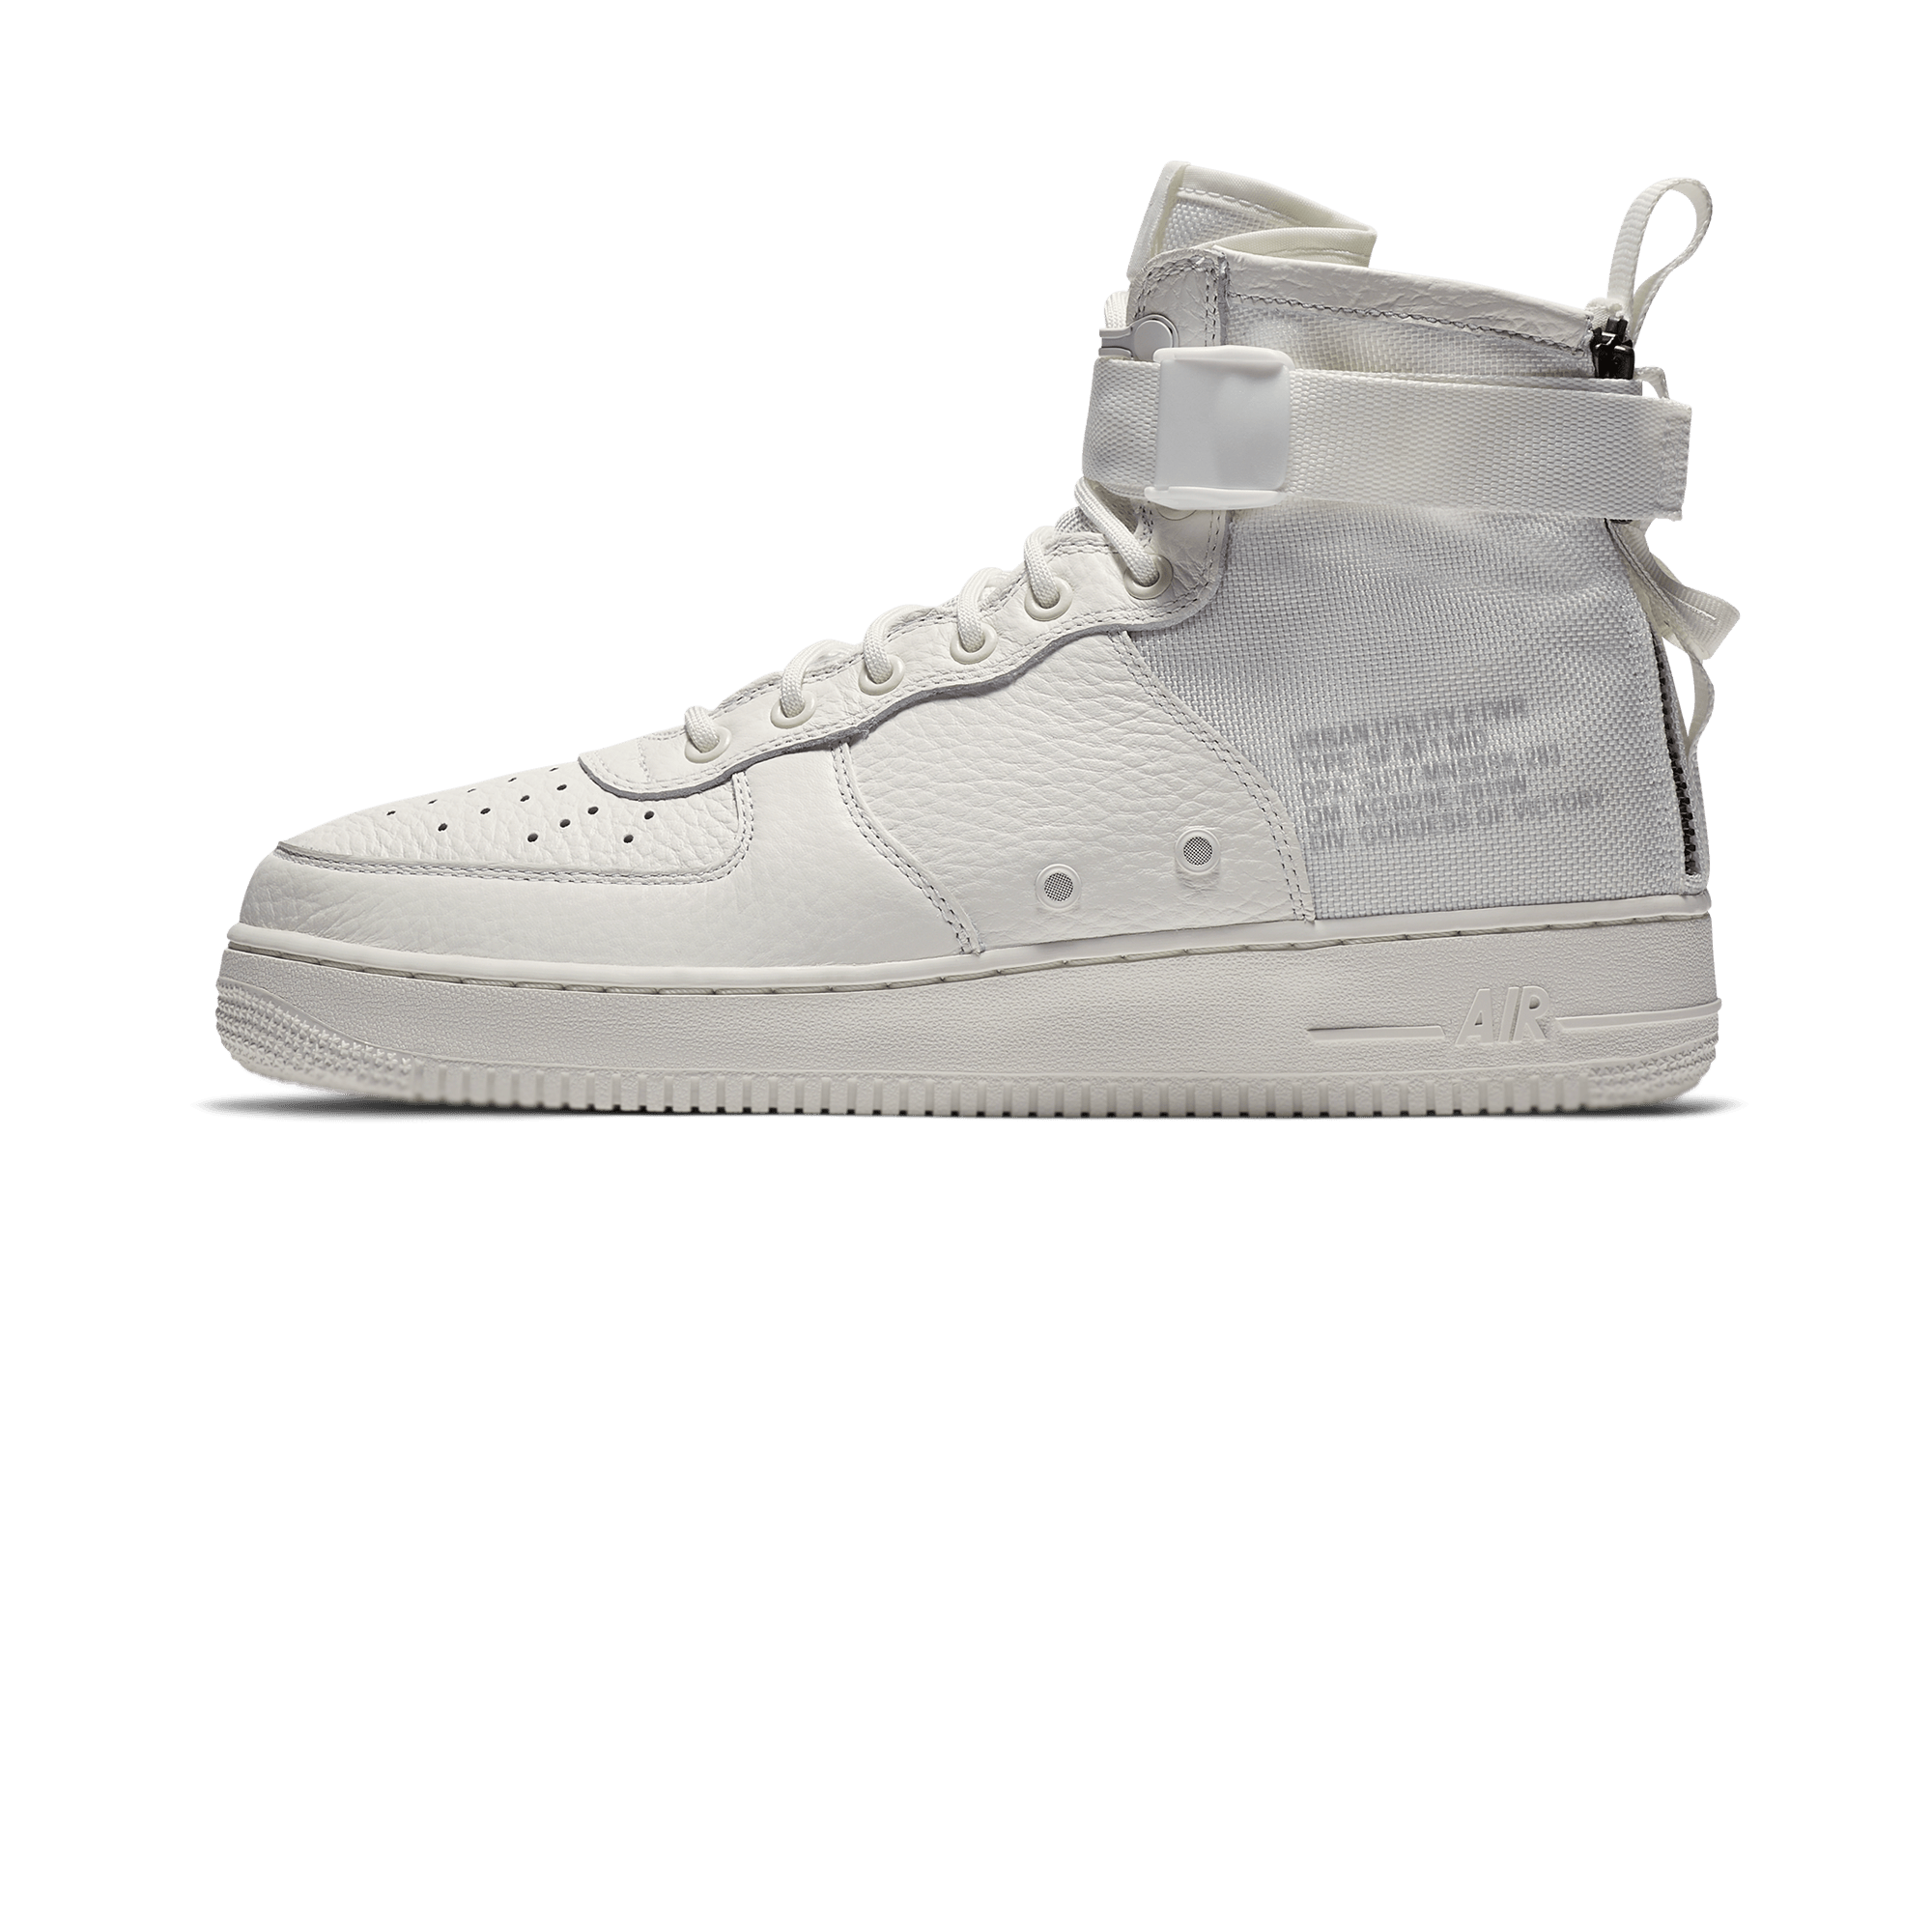 Special Field Air Force 1 Mid white/ivory